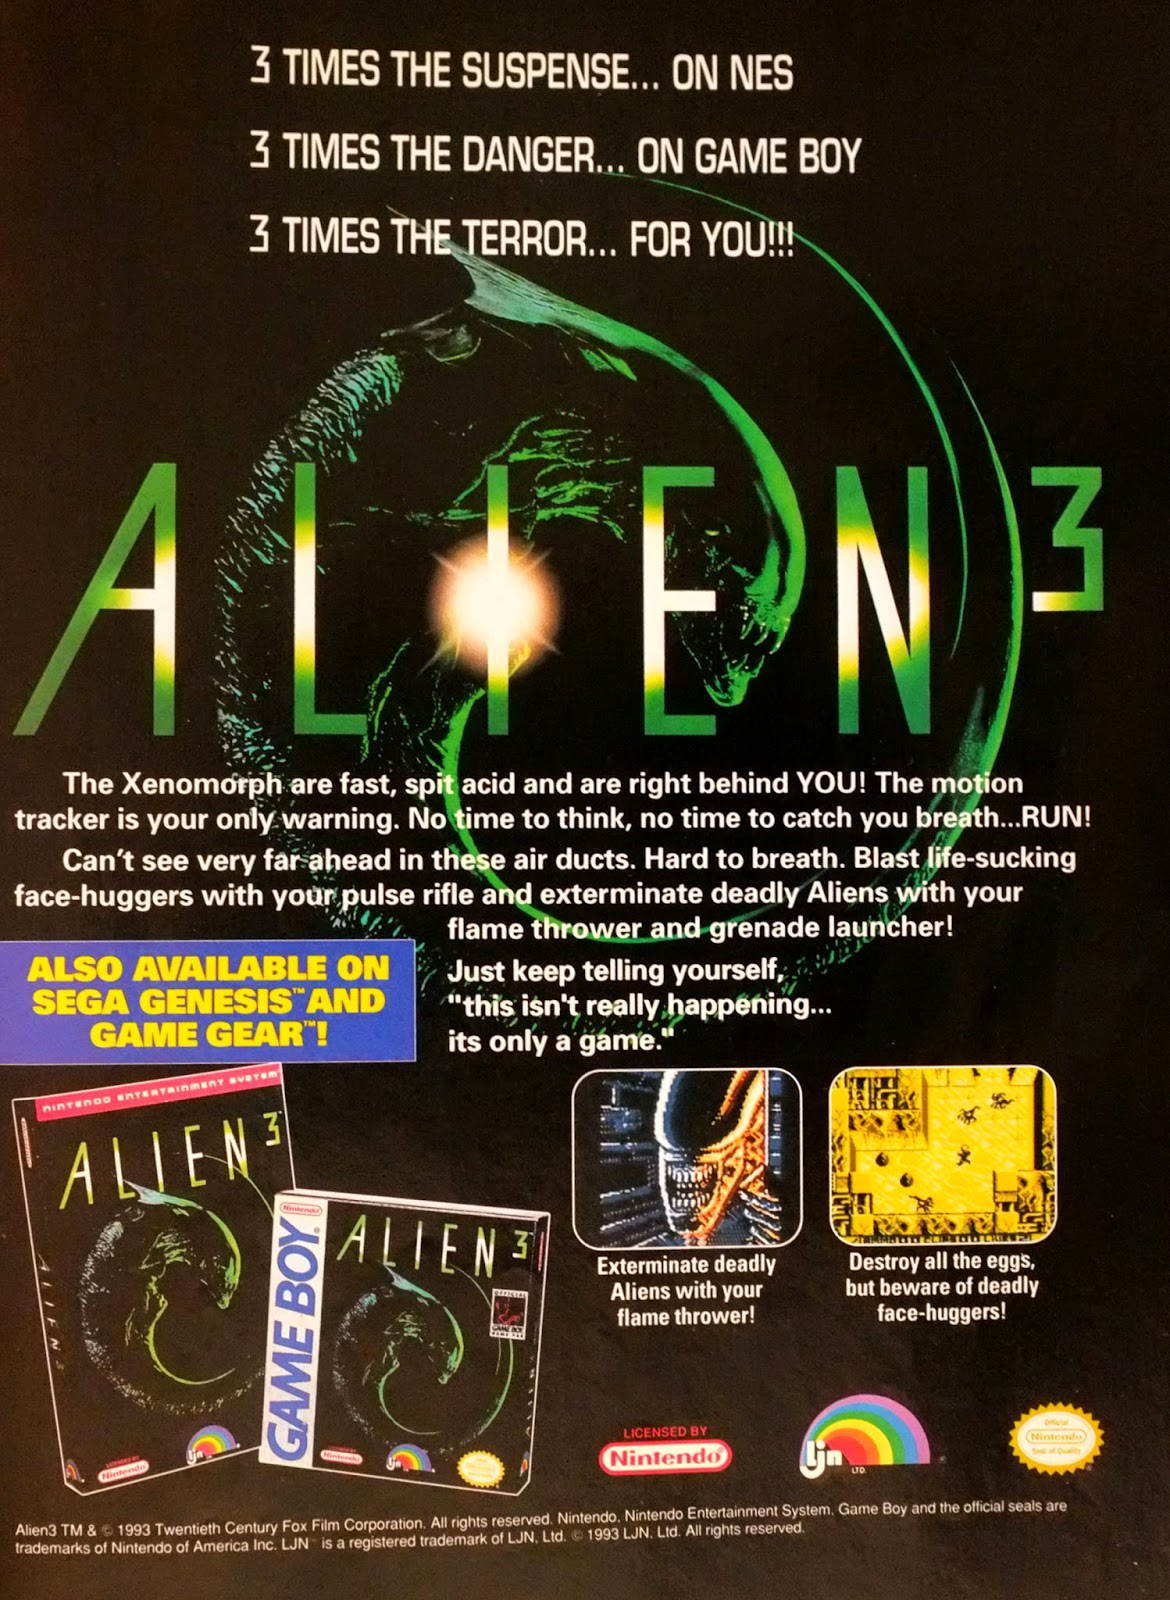 Alien 3 advertisement